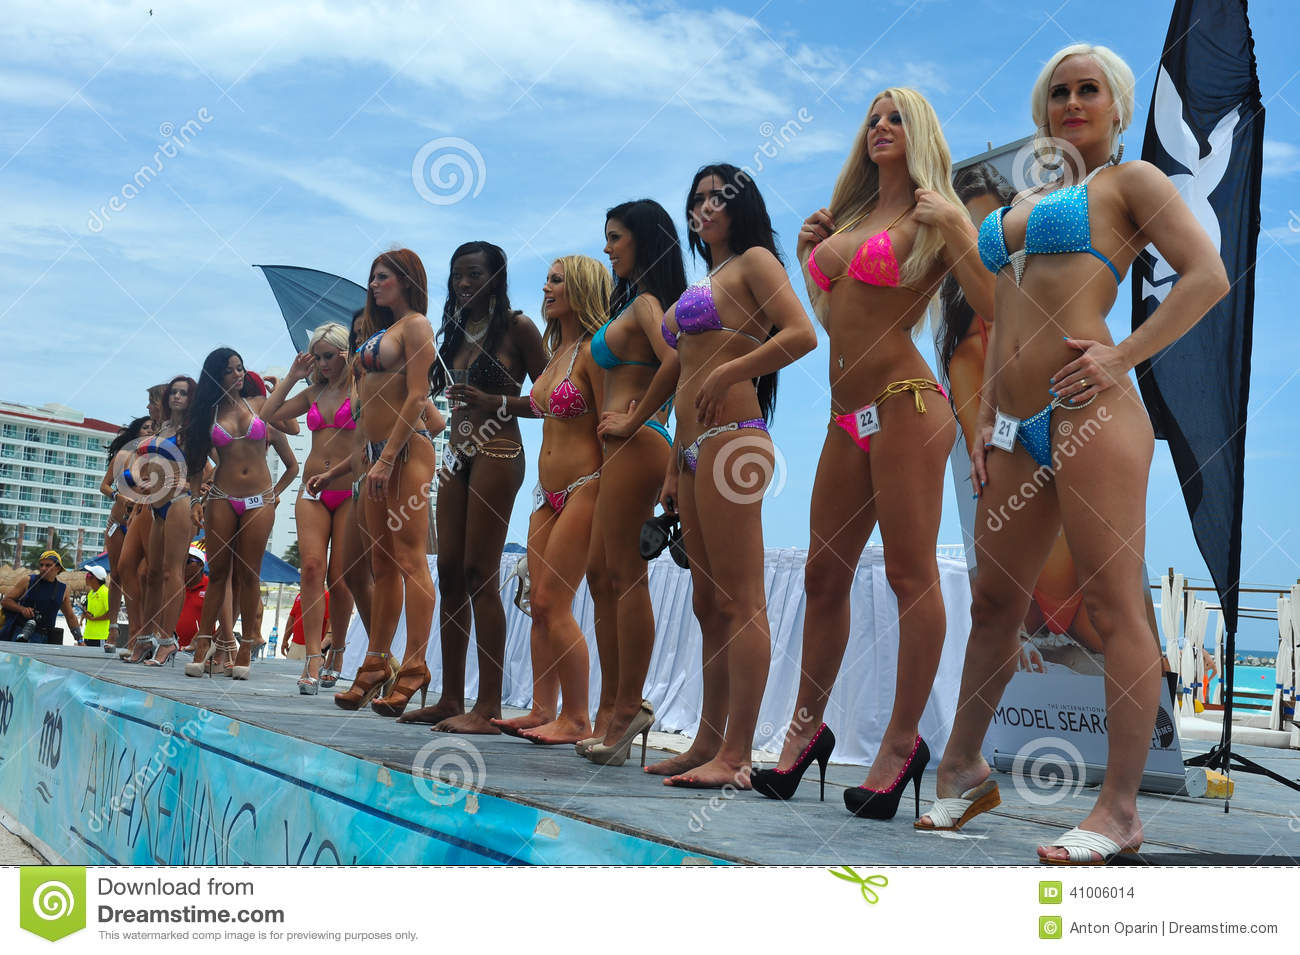 CANCUN, MEXICO - MAY 03: Models lineup on stage during semi-finals IBMS 2014